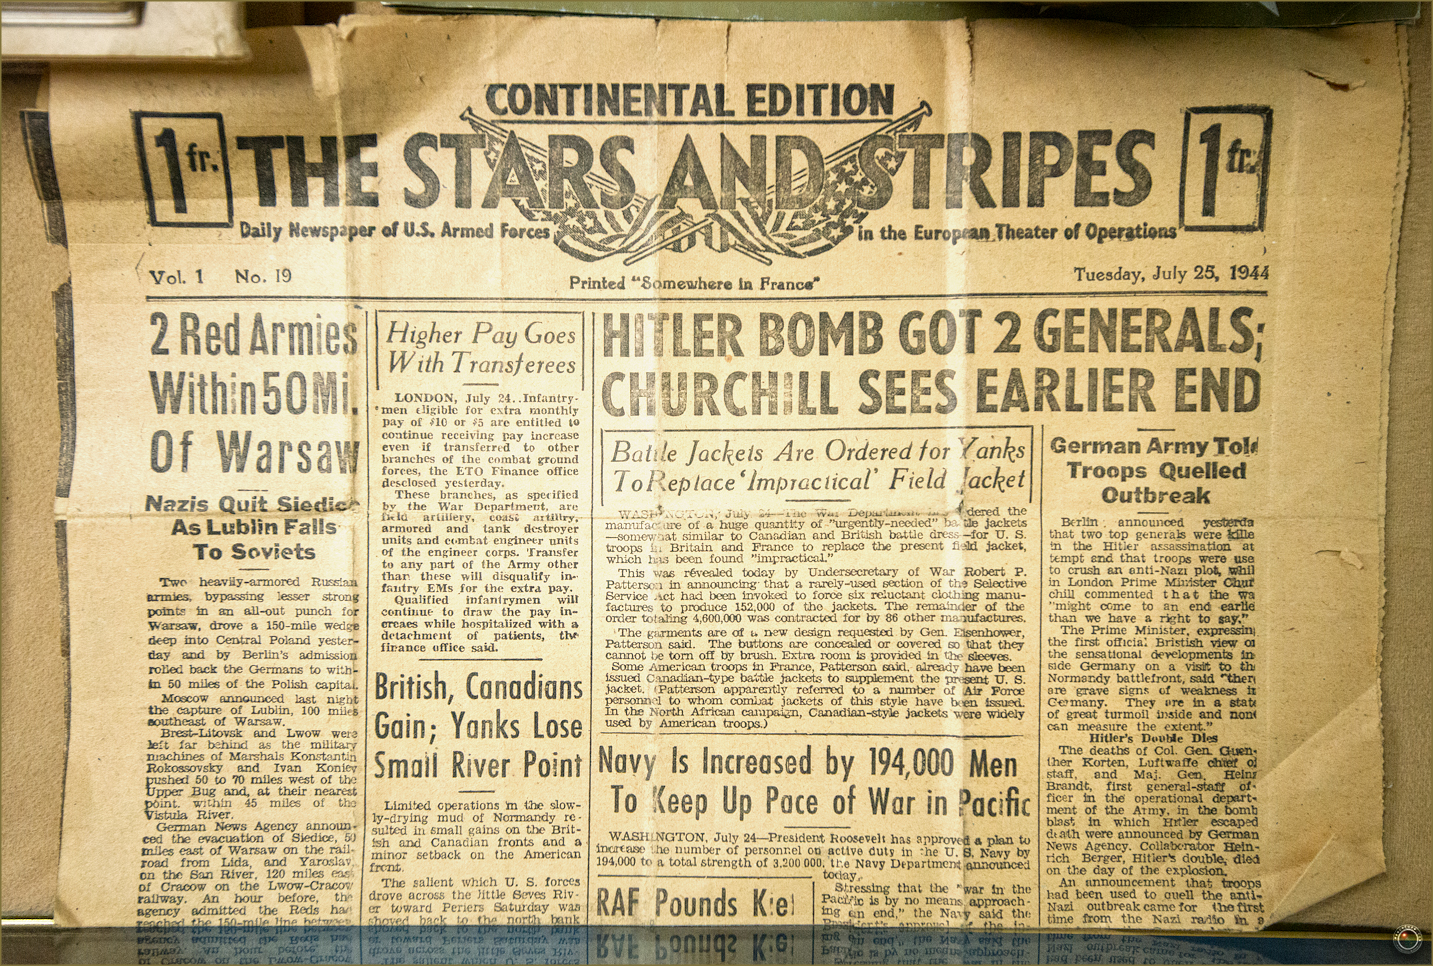 49 Russell Military Museum The Stars and Stripes Newspaper